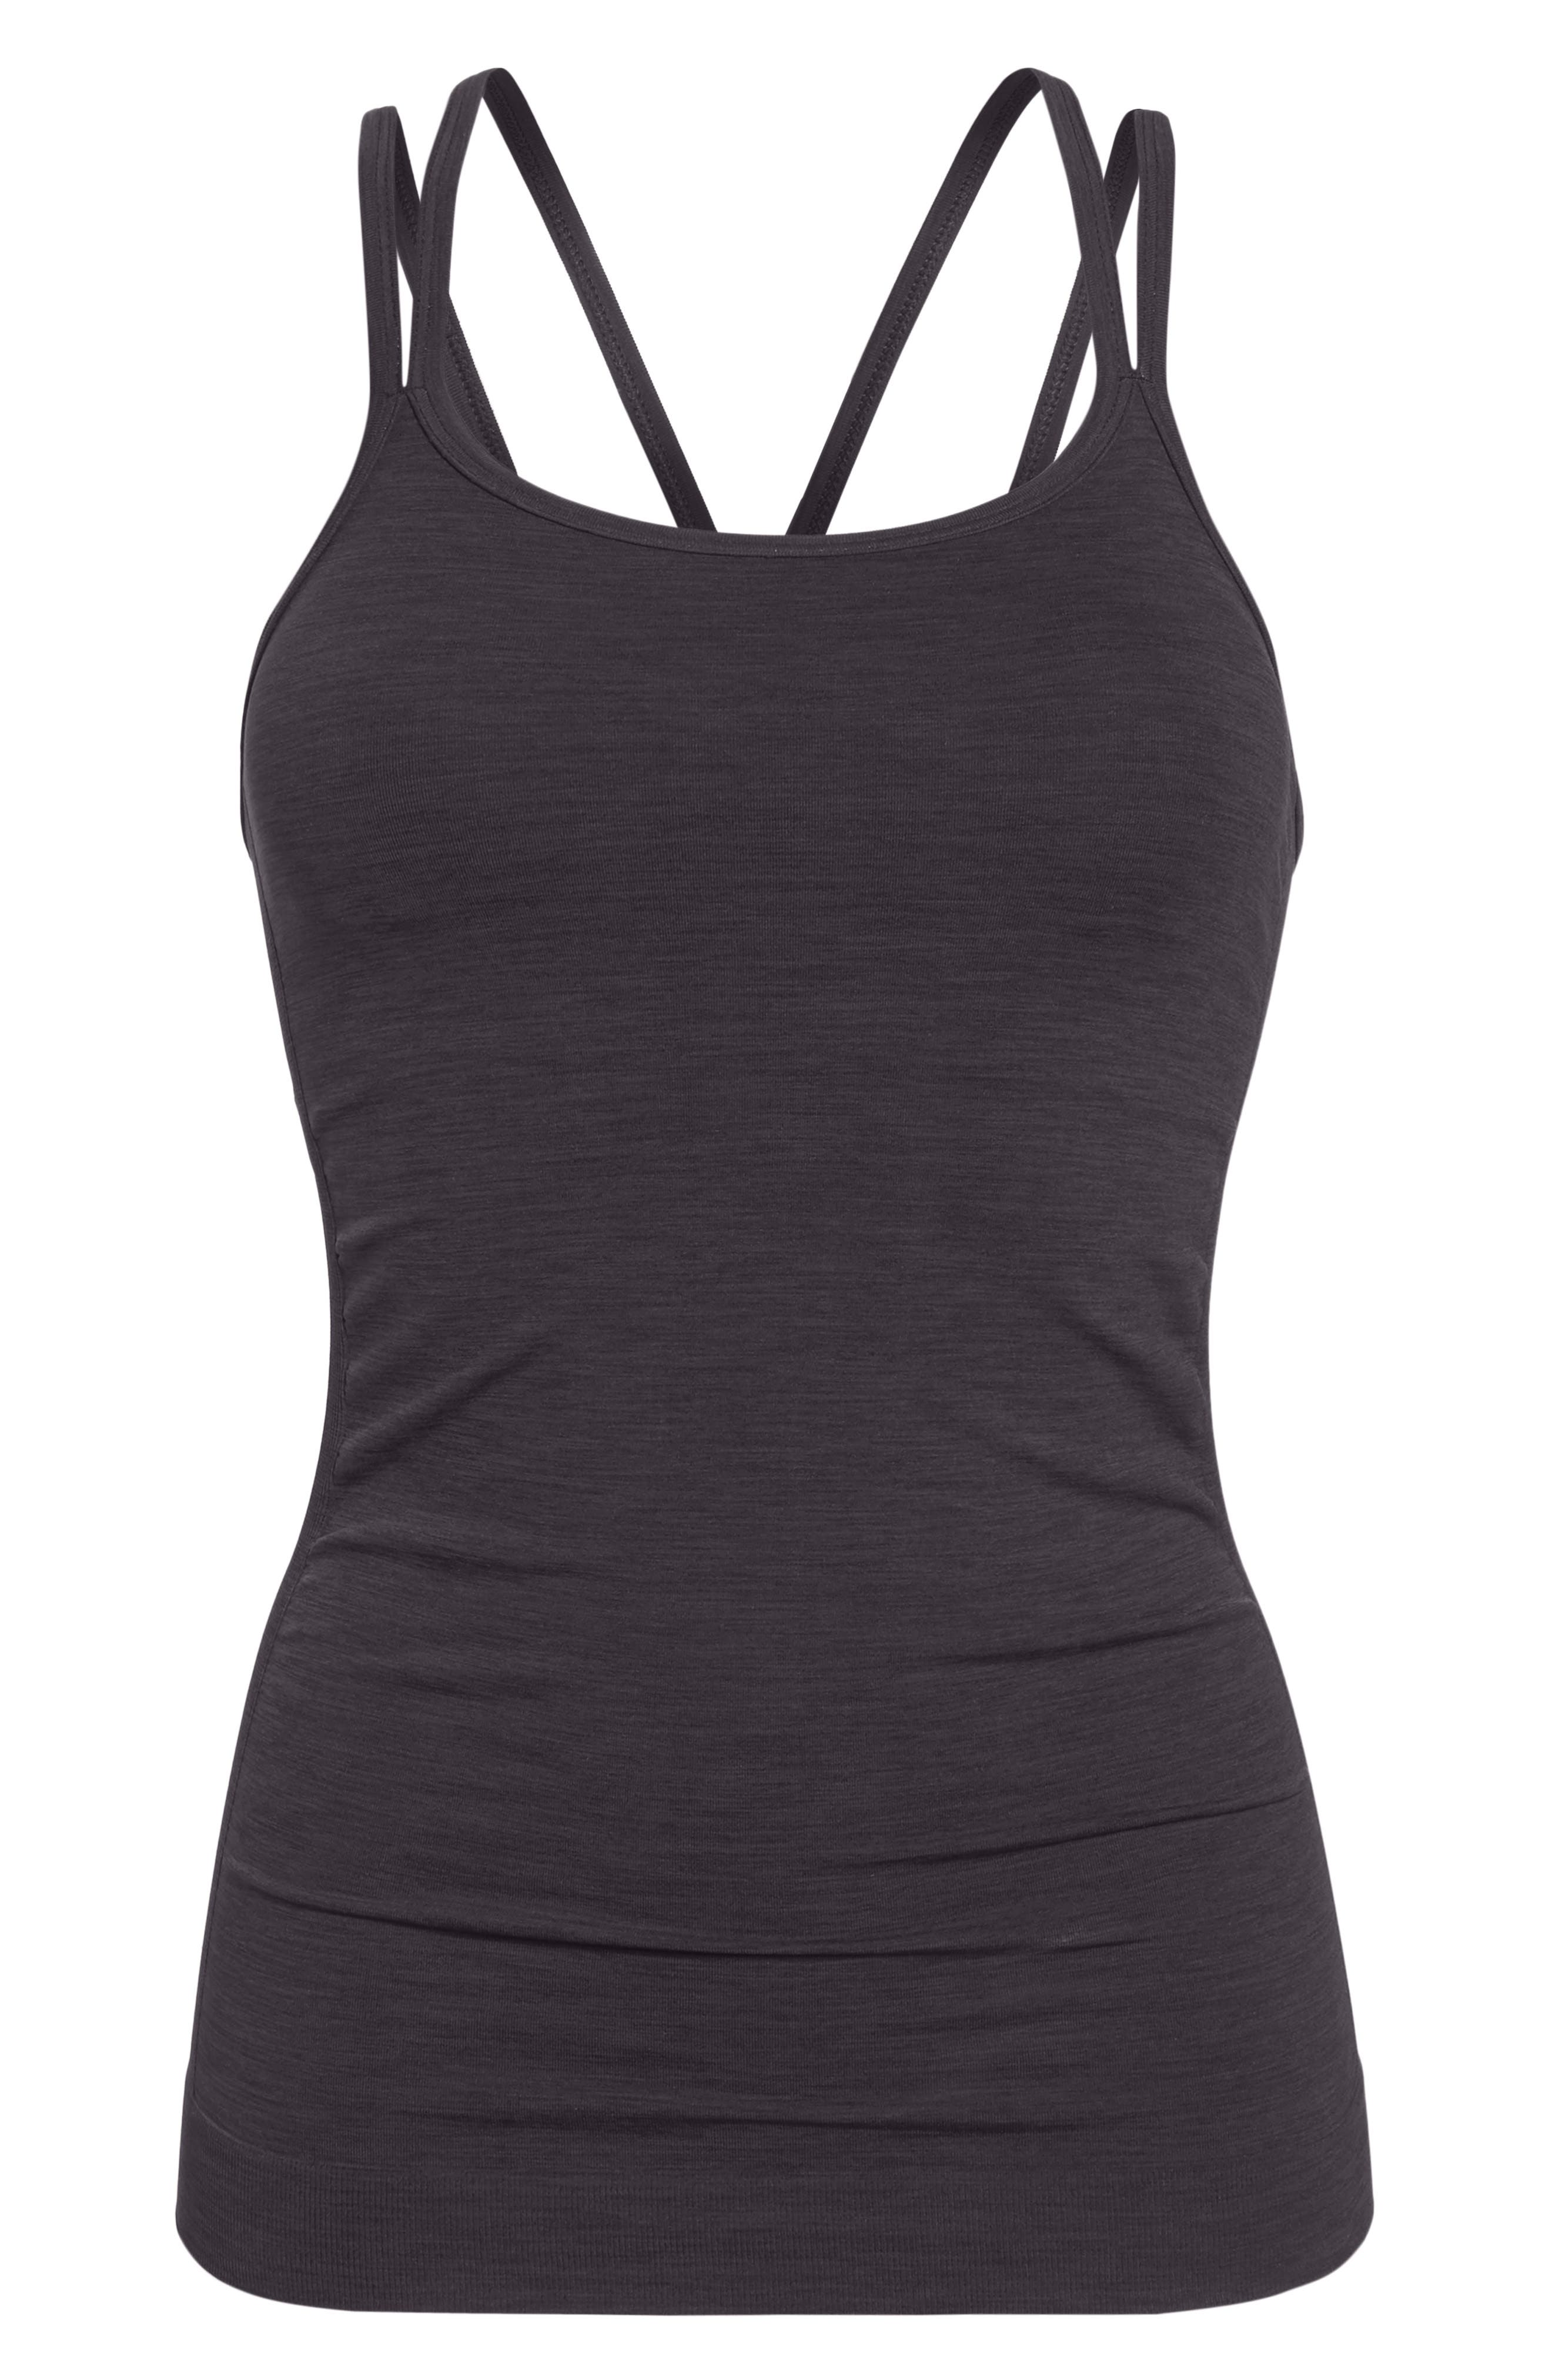 Namaska Yoga Tank,                             Alternate thumbnail 11, color,